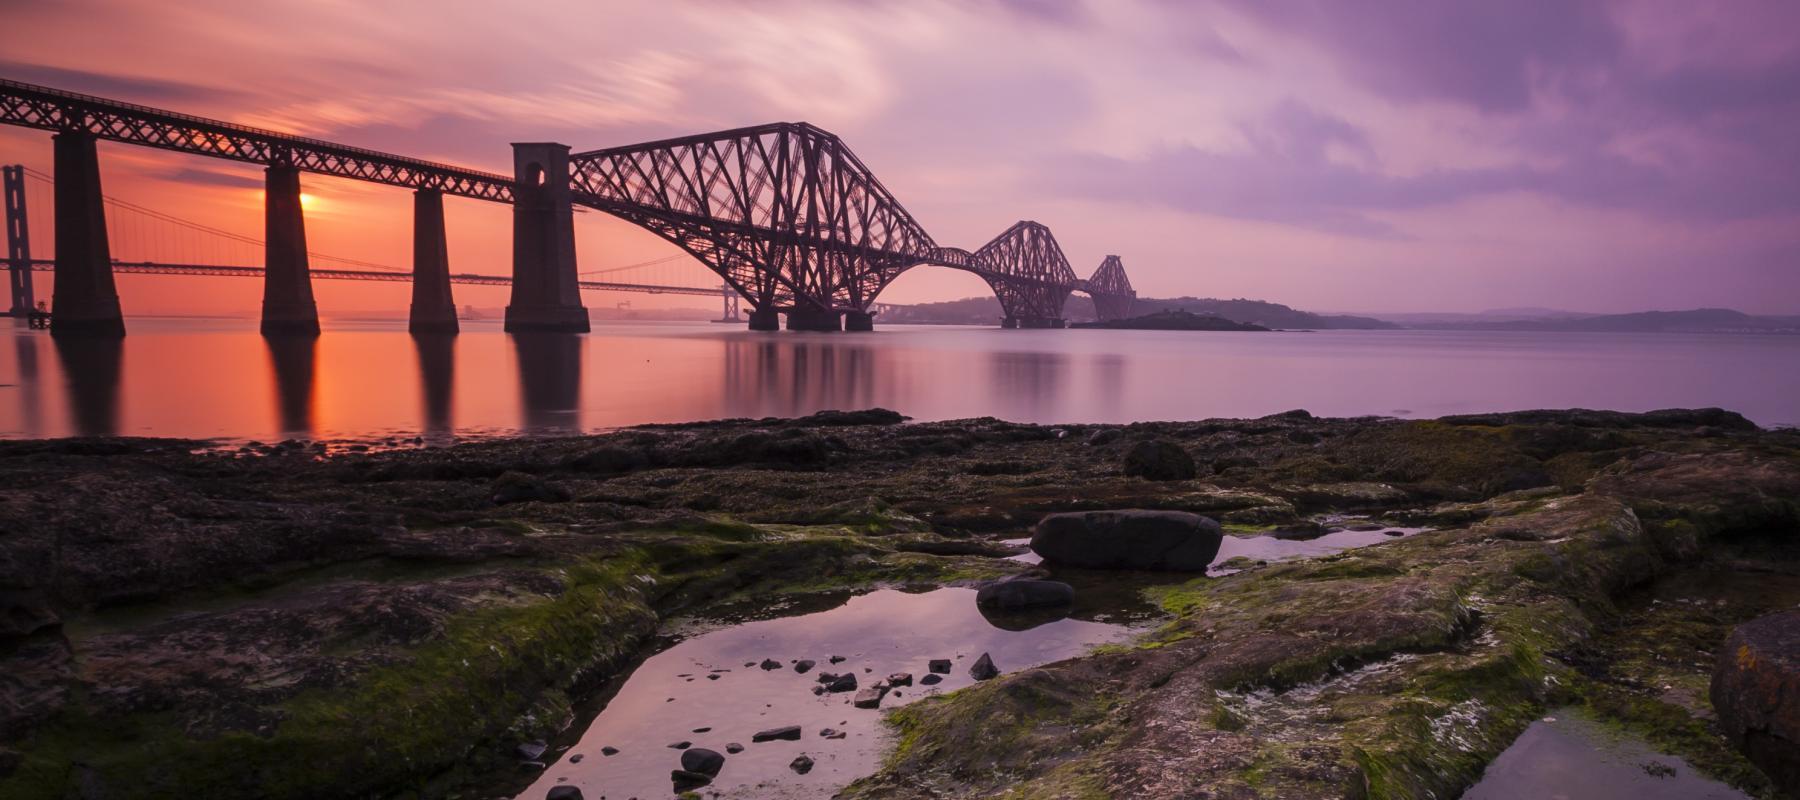 Travel along the historic Forth Bridge.